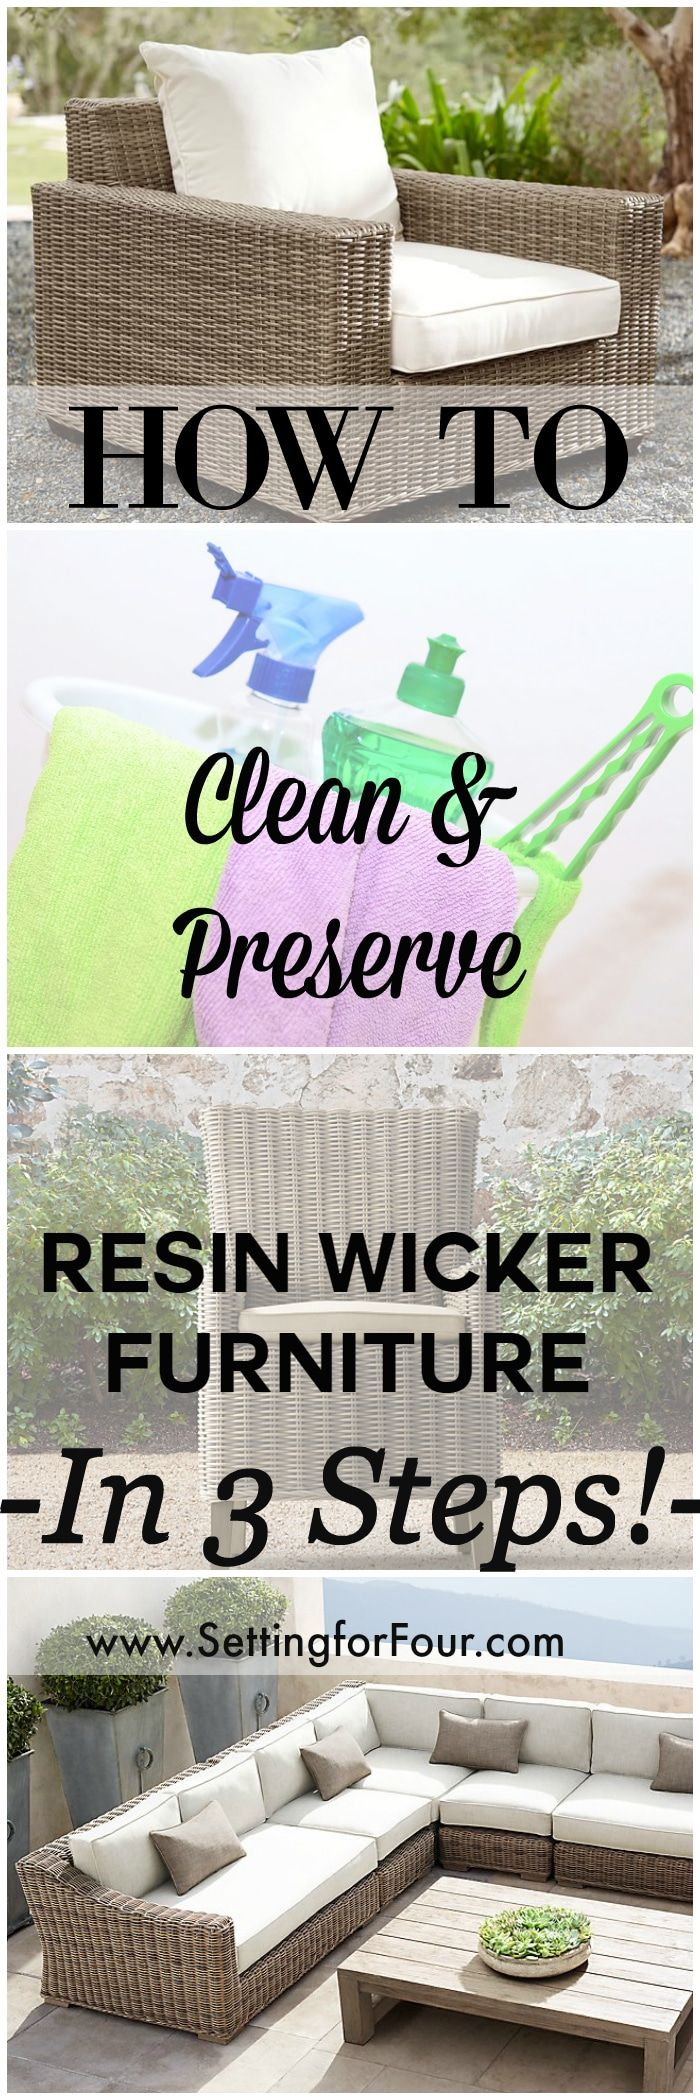 Keep your resin wicker furniture looking gorgeous year after year and in tip top shape in just 3 Steps! How to clean and preserve resin wicker furniture: Learn the 3 steps to best care for and protect your resin outdoor furniture to maintain it's incredible durability and distinctive style at www.settingforfour.com